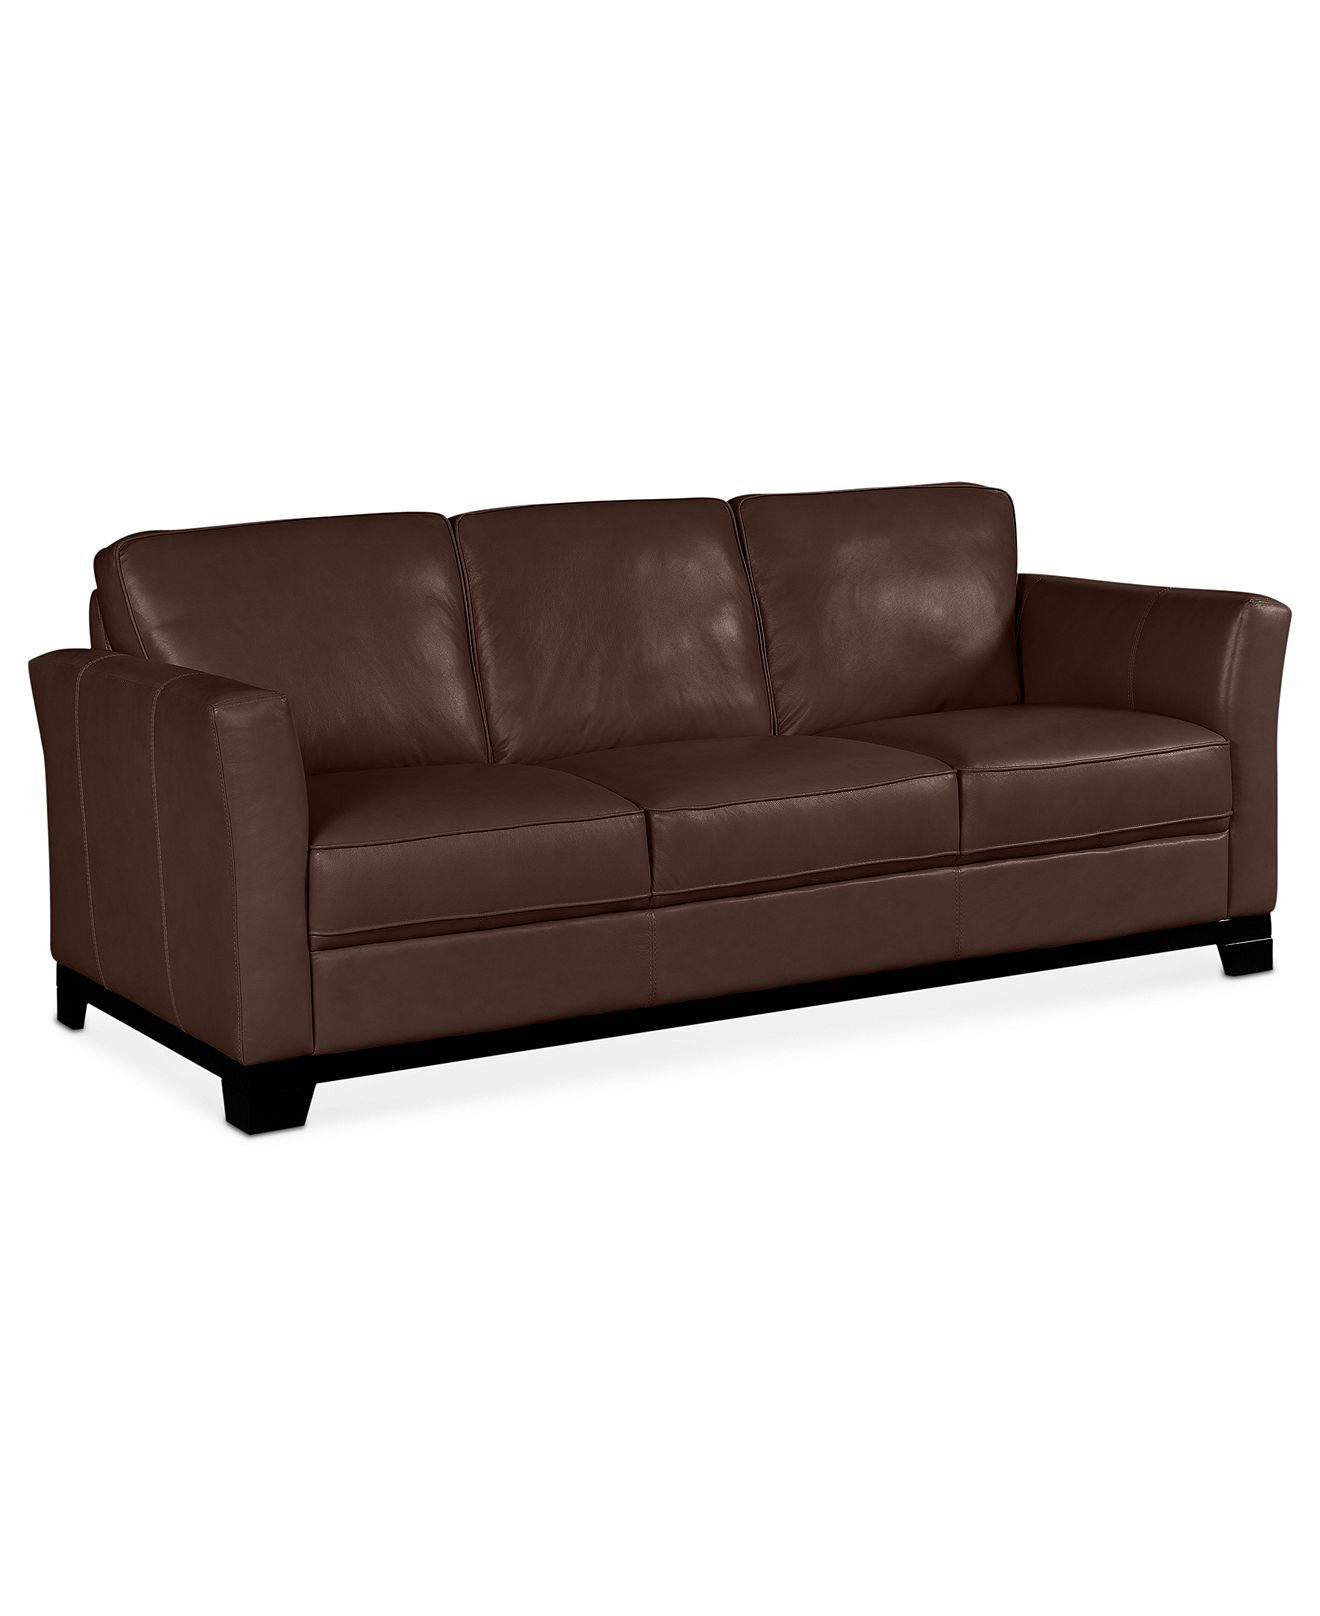 Turin Leather Sofa 87